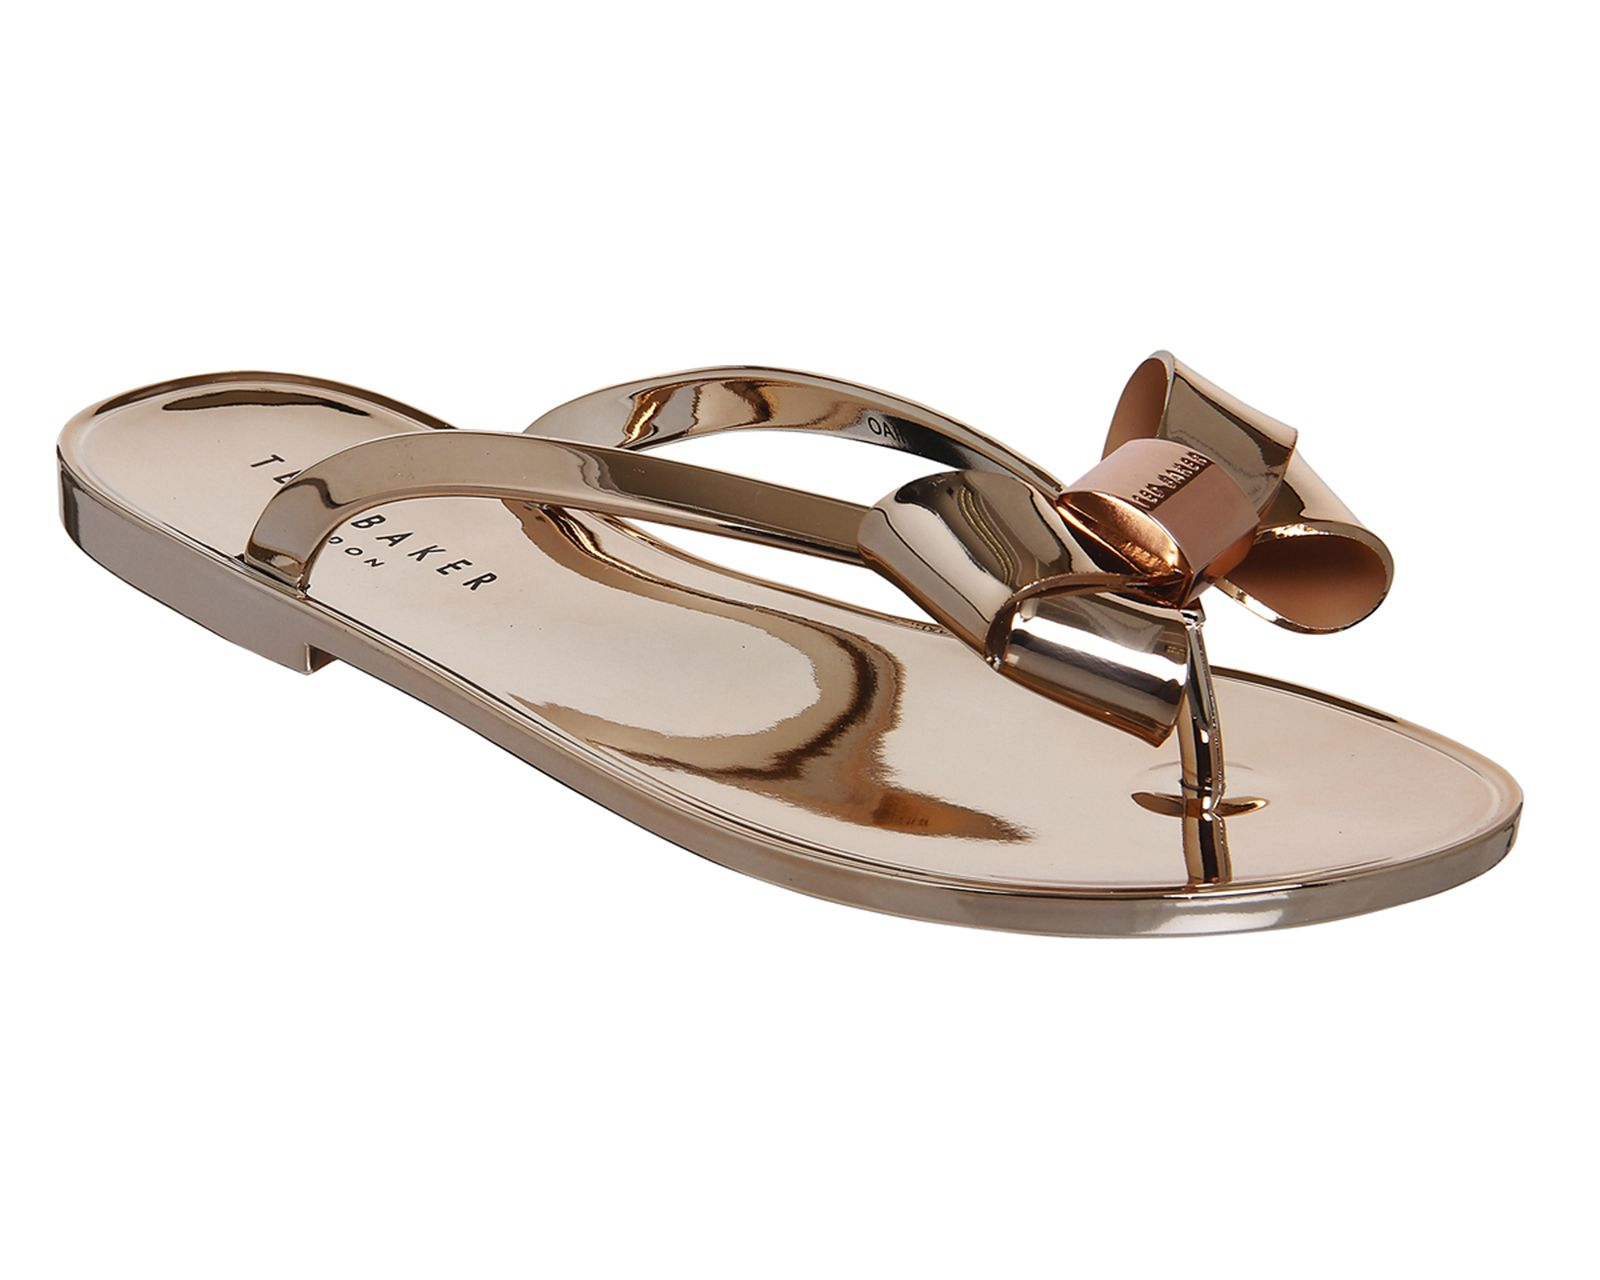 b383dd70205b Buy Rose Gold Exclusive Ted Baker Ettiea Flip Flops from OFFICE.co ...